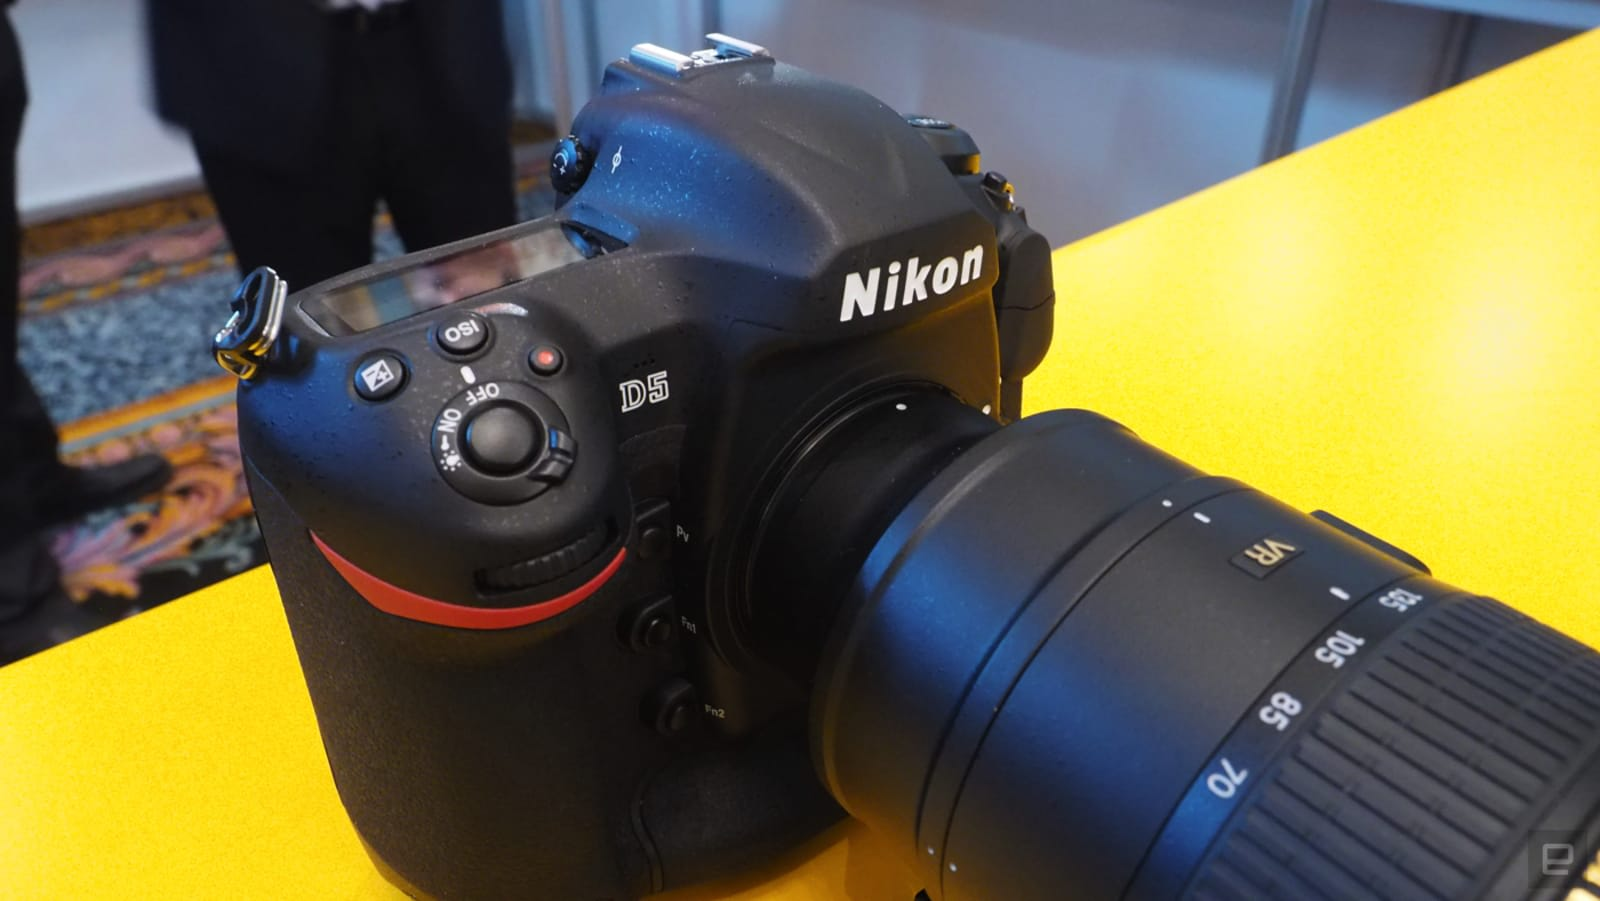 Nikon plans an answer to Sony's A9 mirrorless pro camera